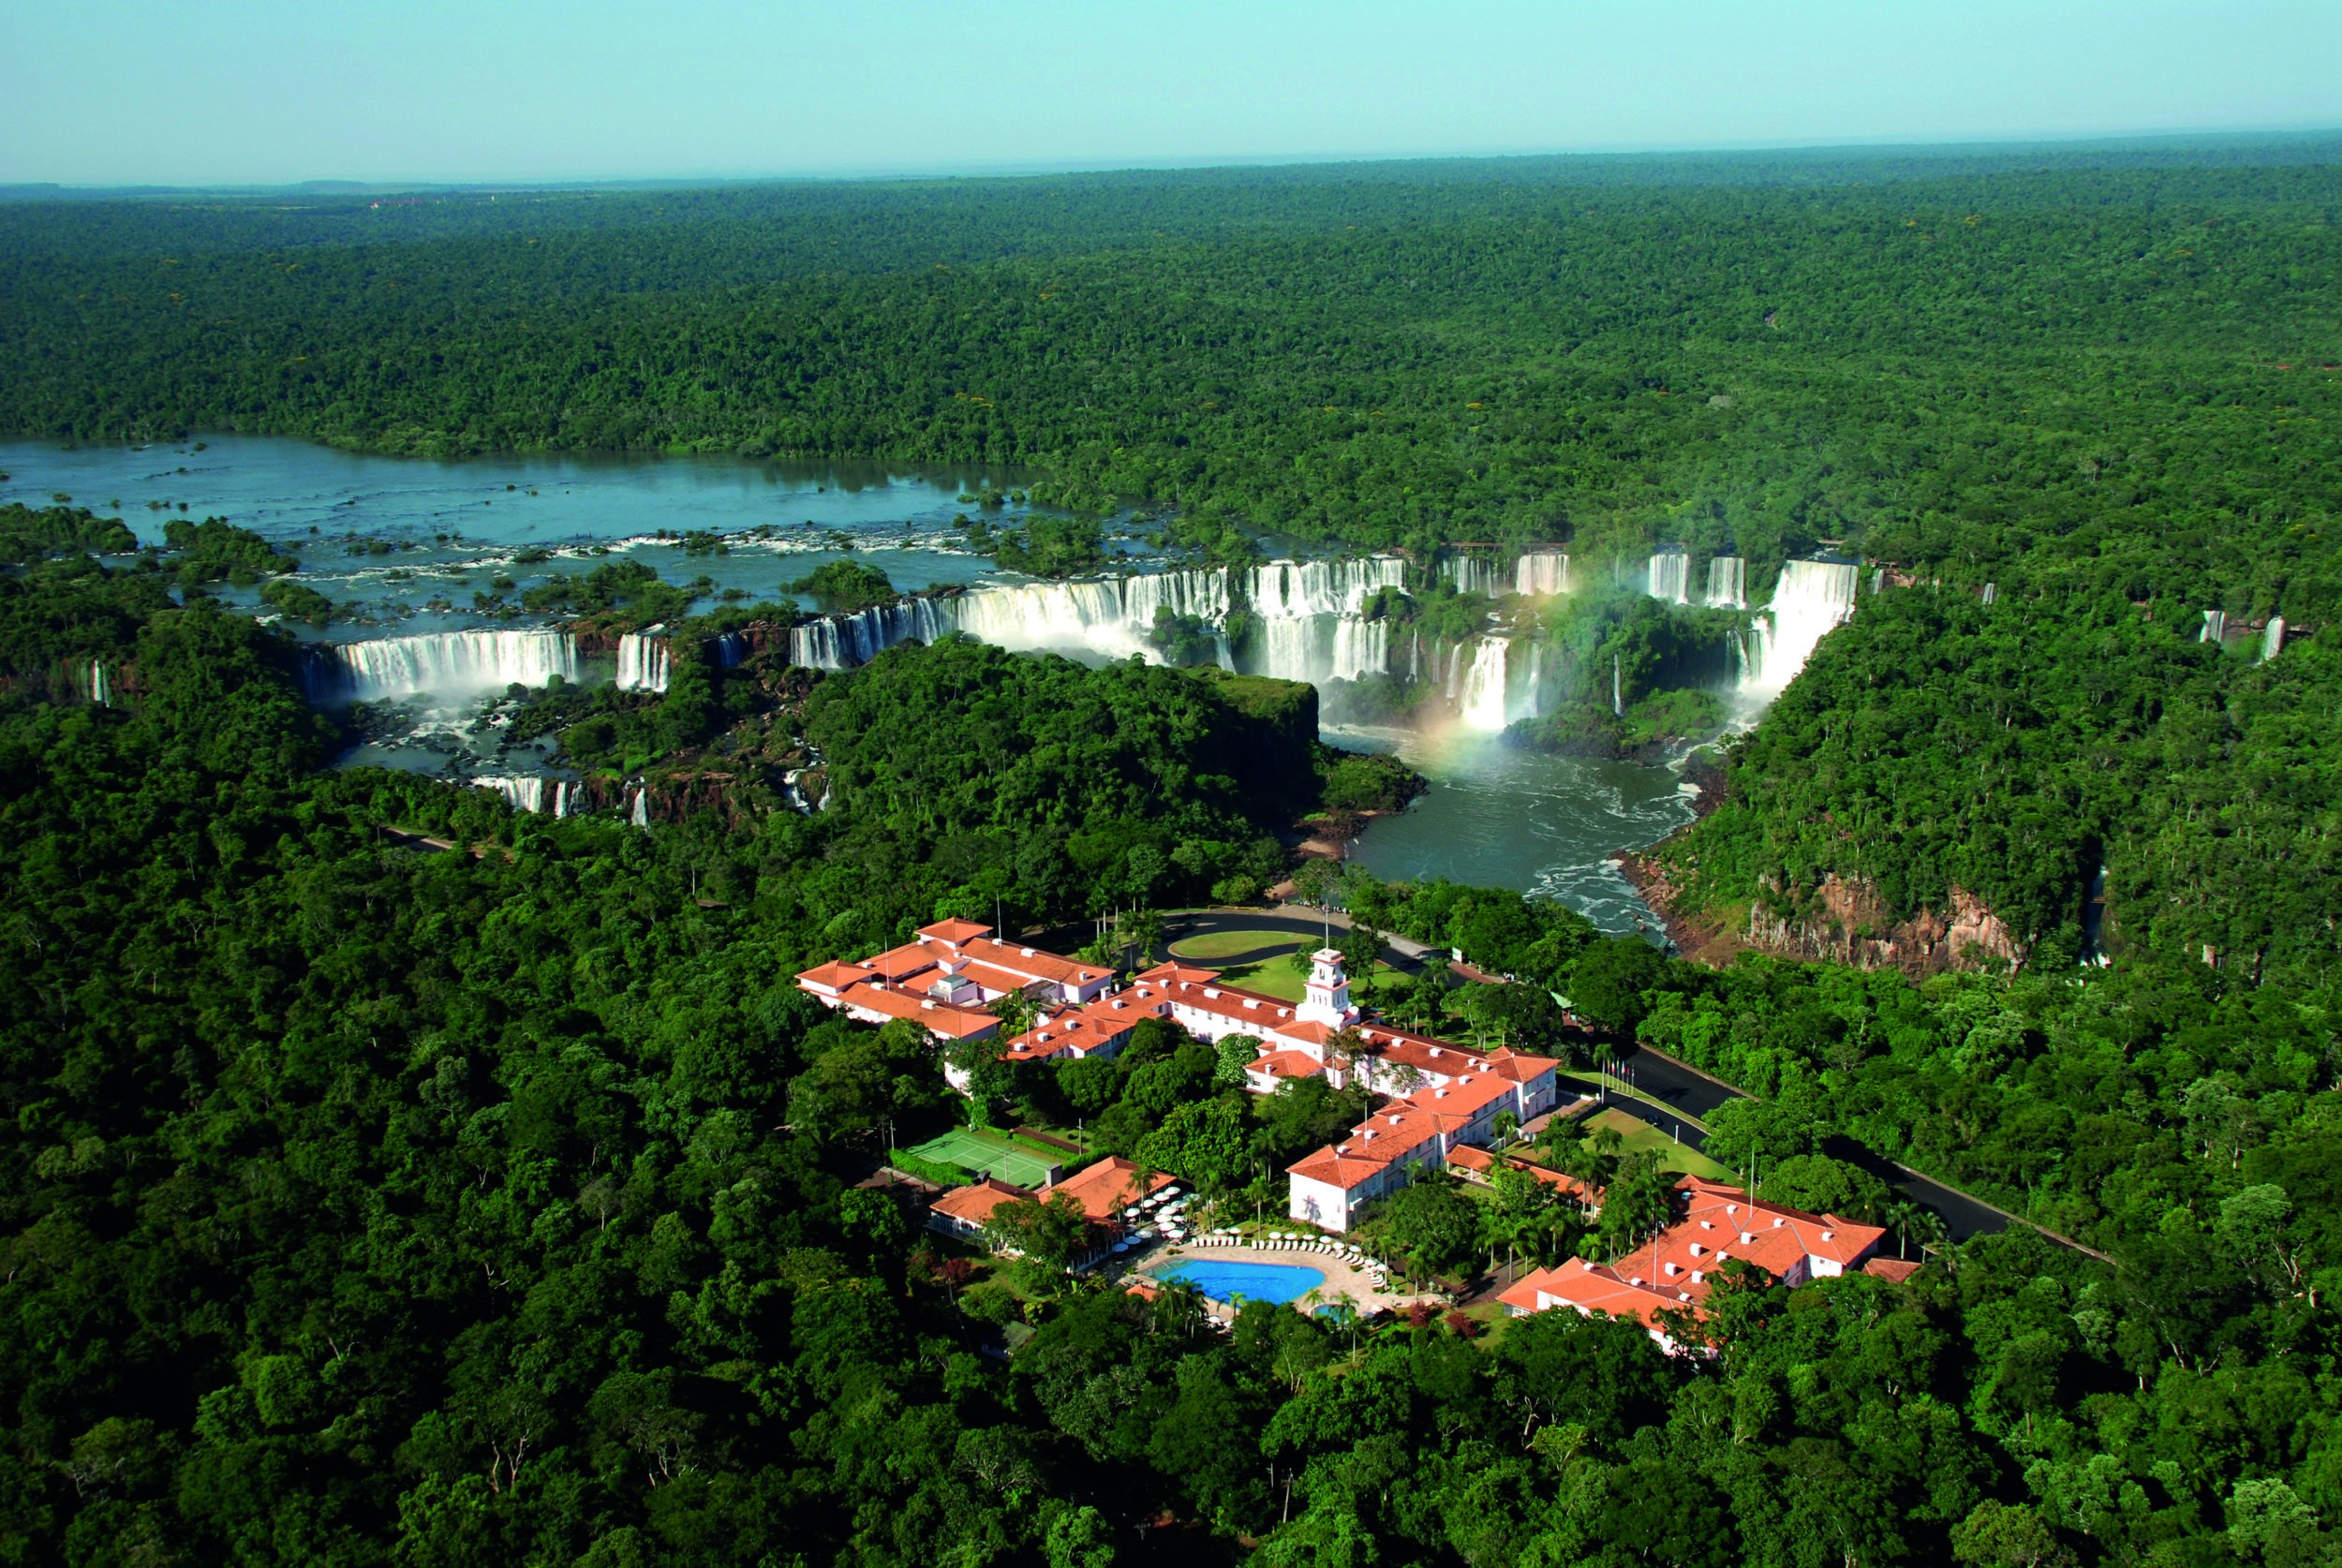 Iguazu Falls - A Spectacle of Nature